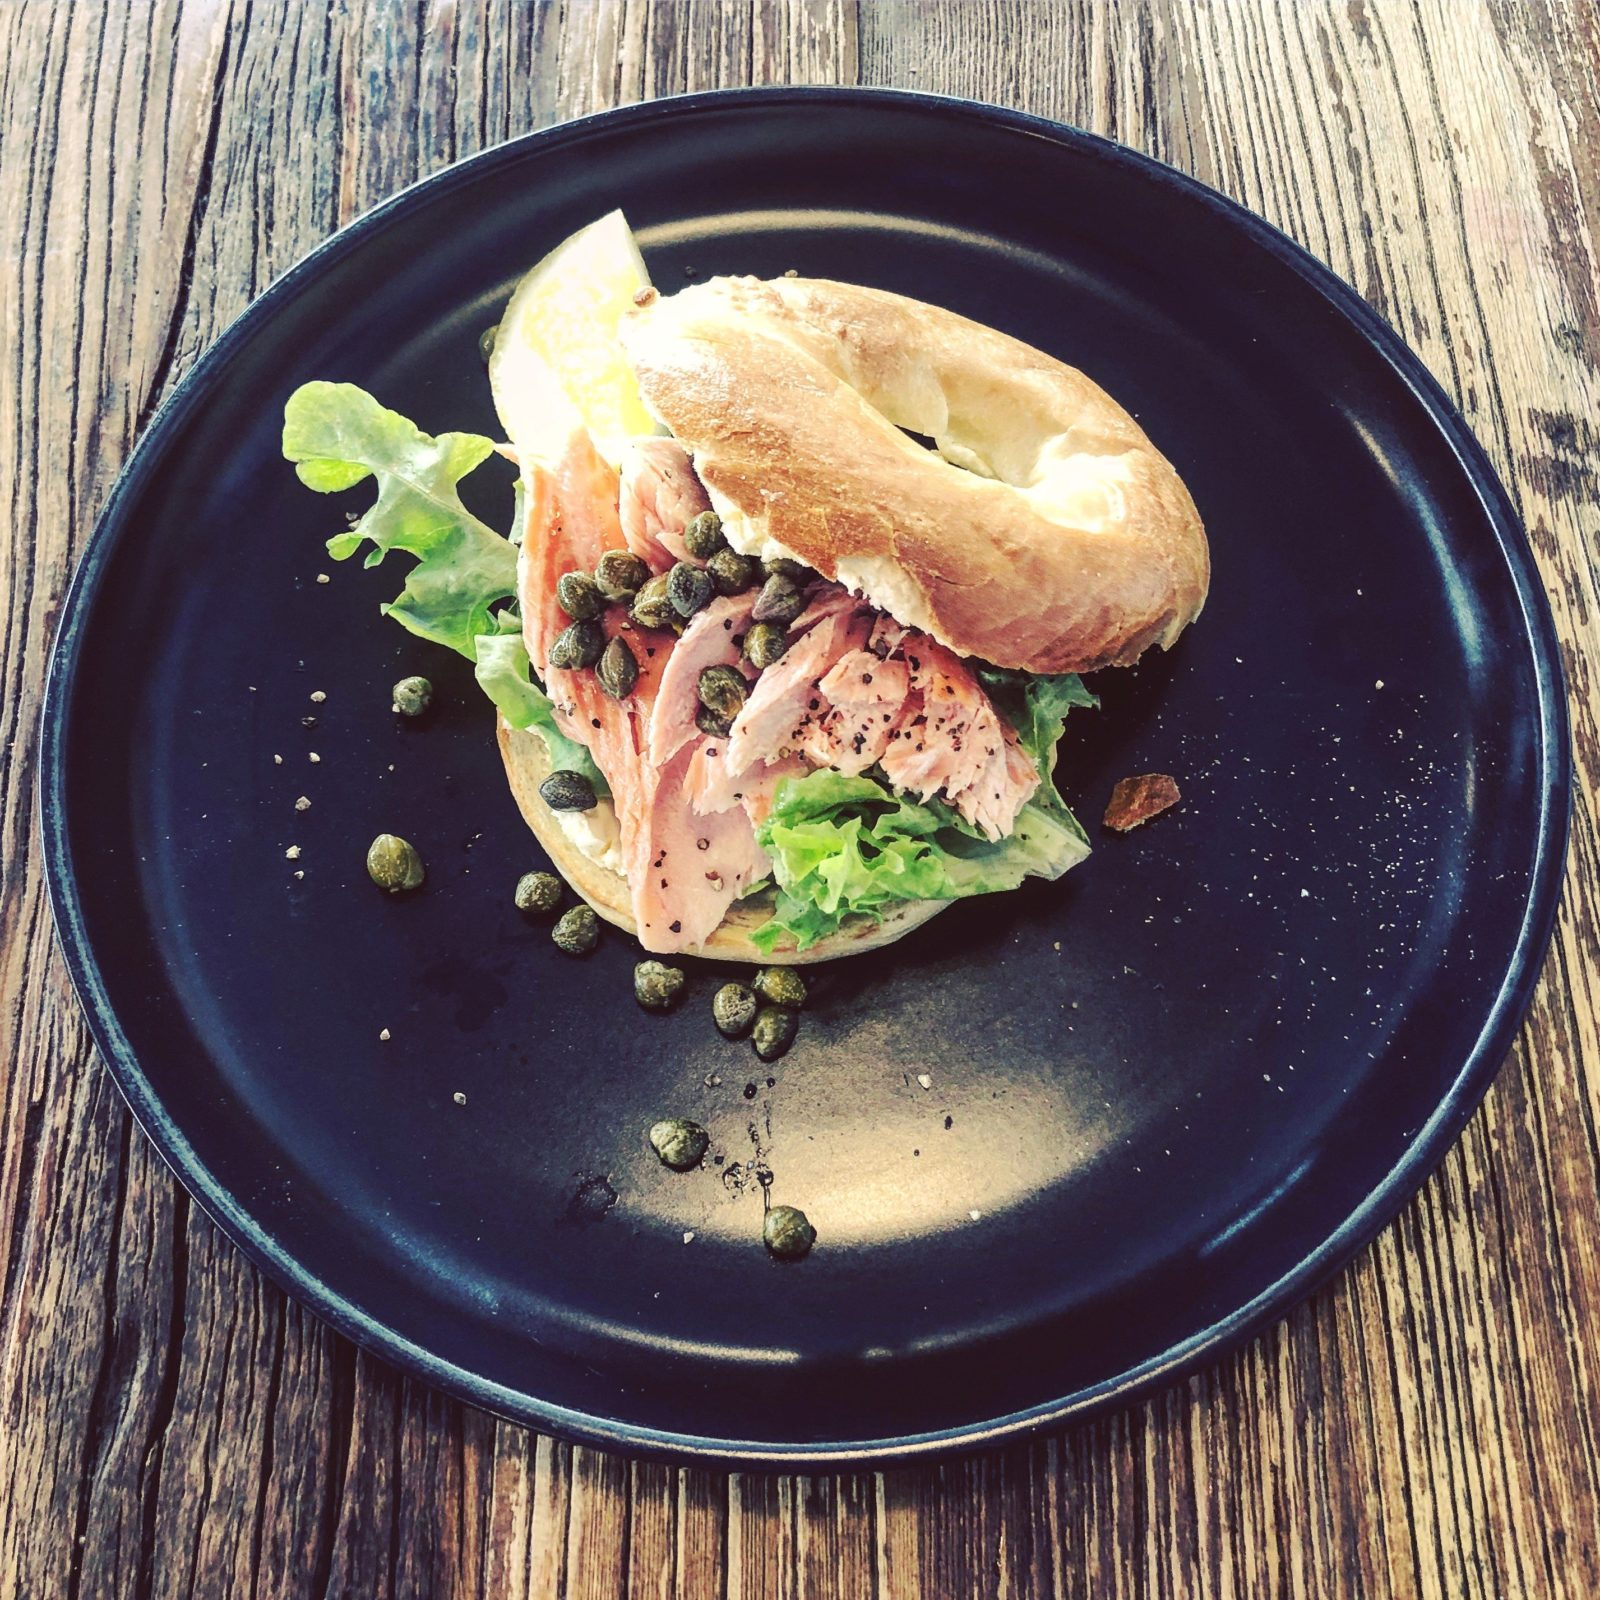 Smoked salmon bagel with cream cheese and capers